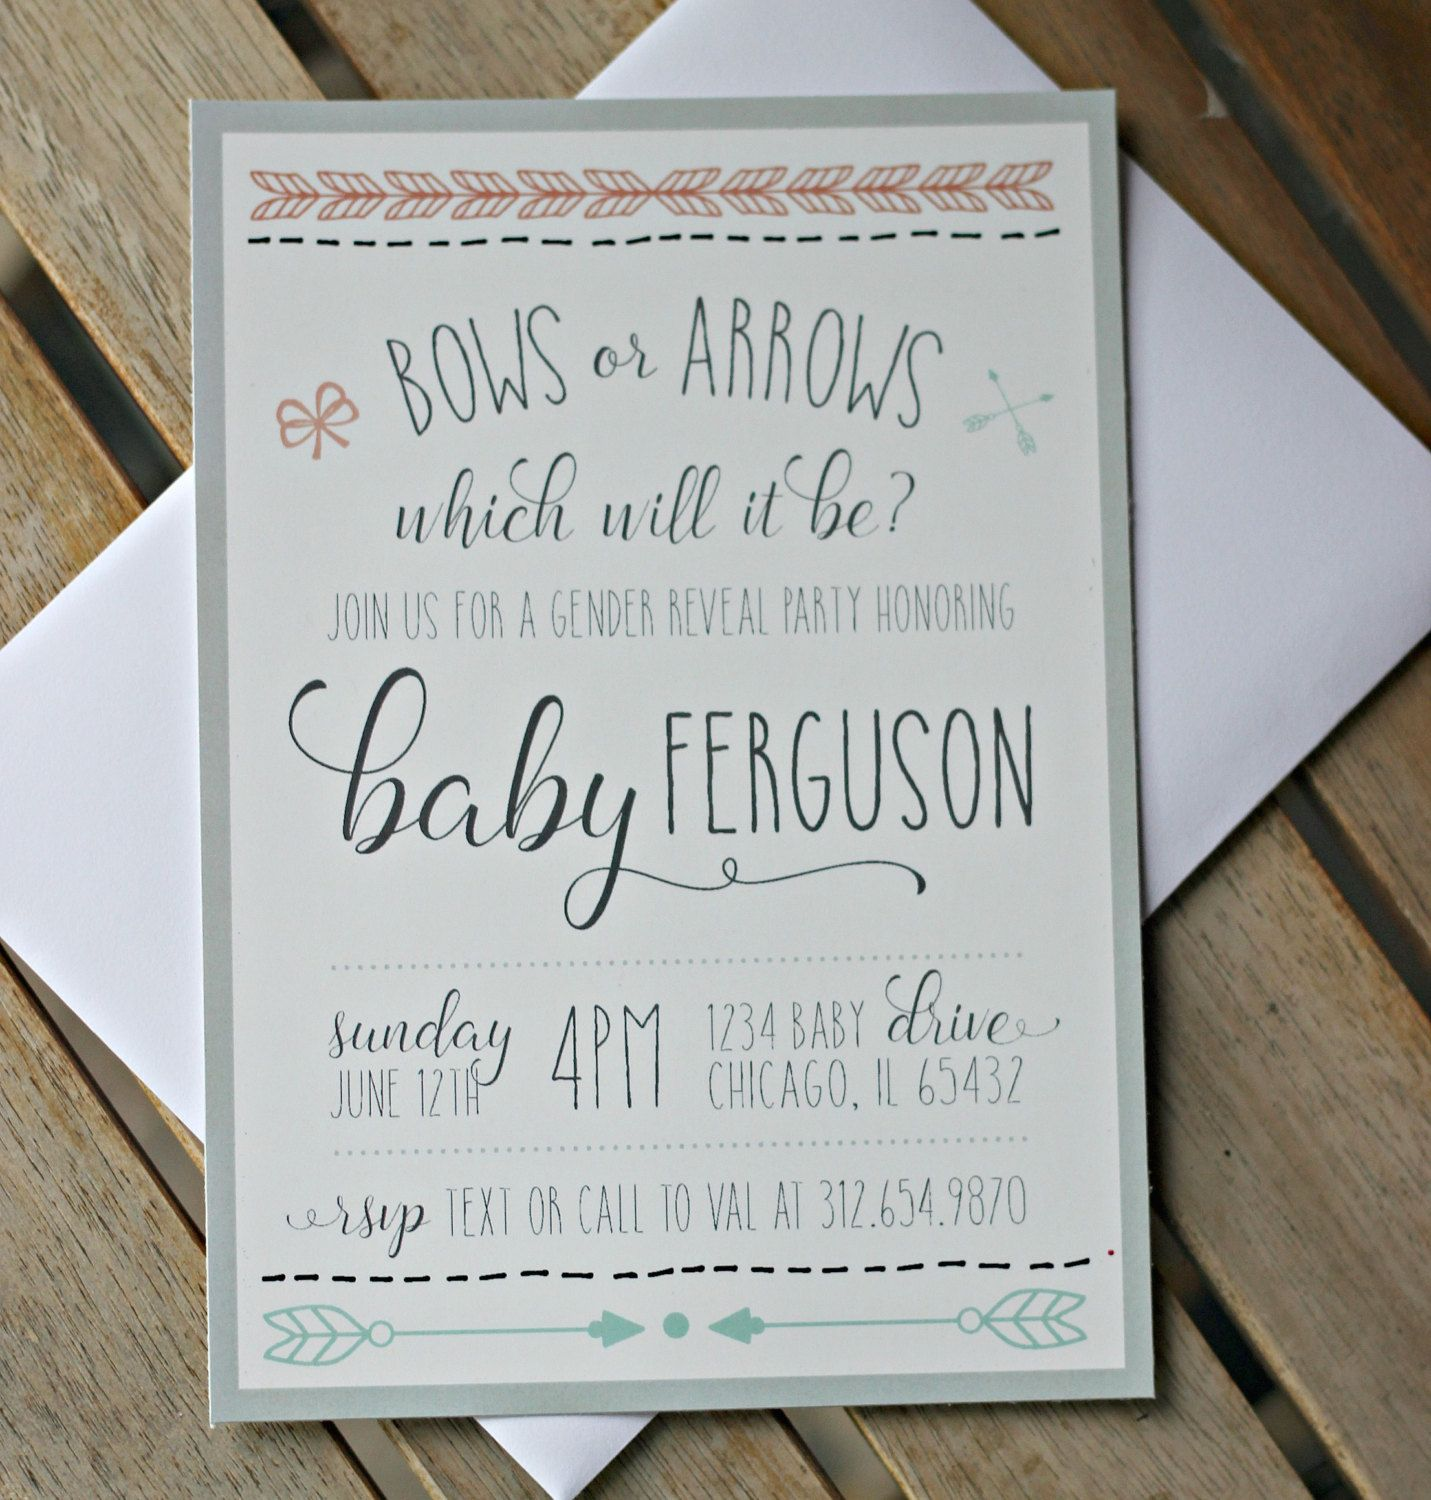 Gender Reveal Party Invitation / Bows or Arrows / Tribal / Aztec ...